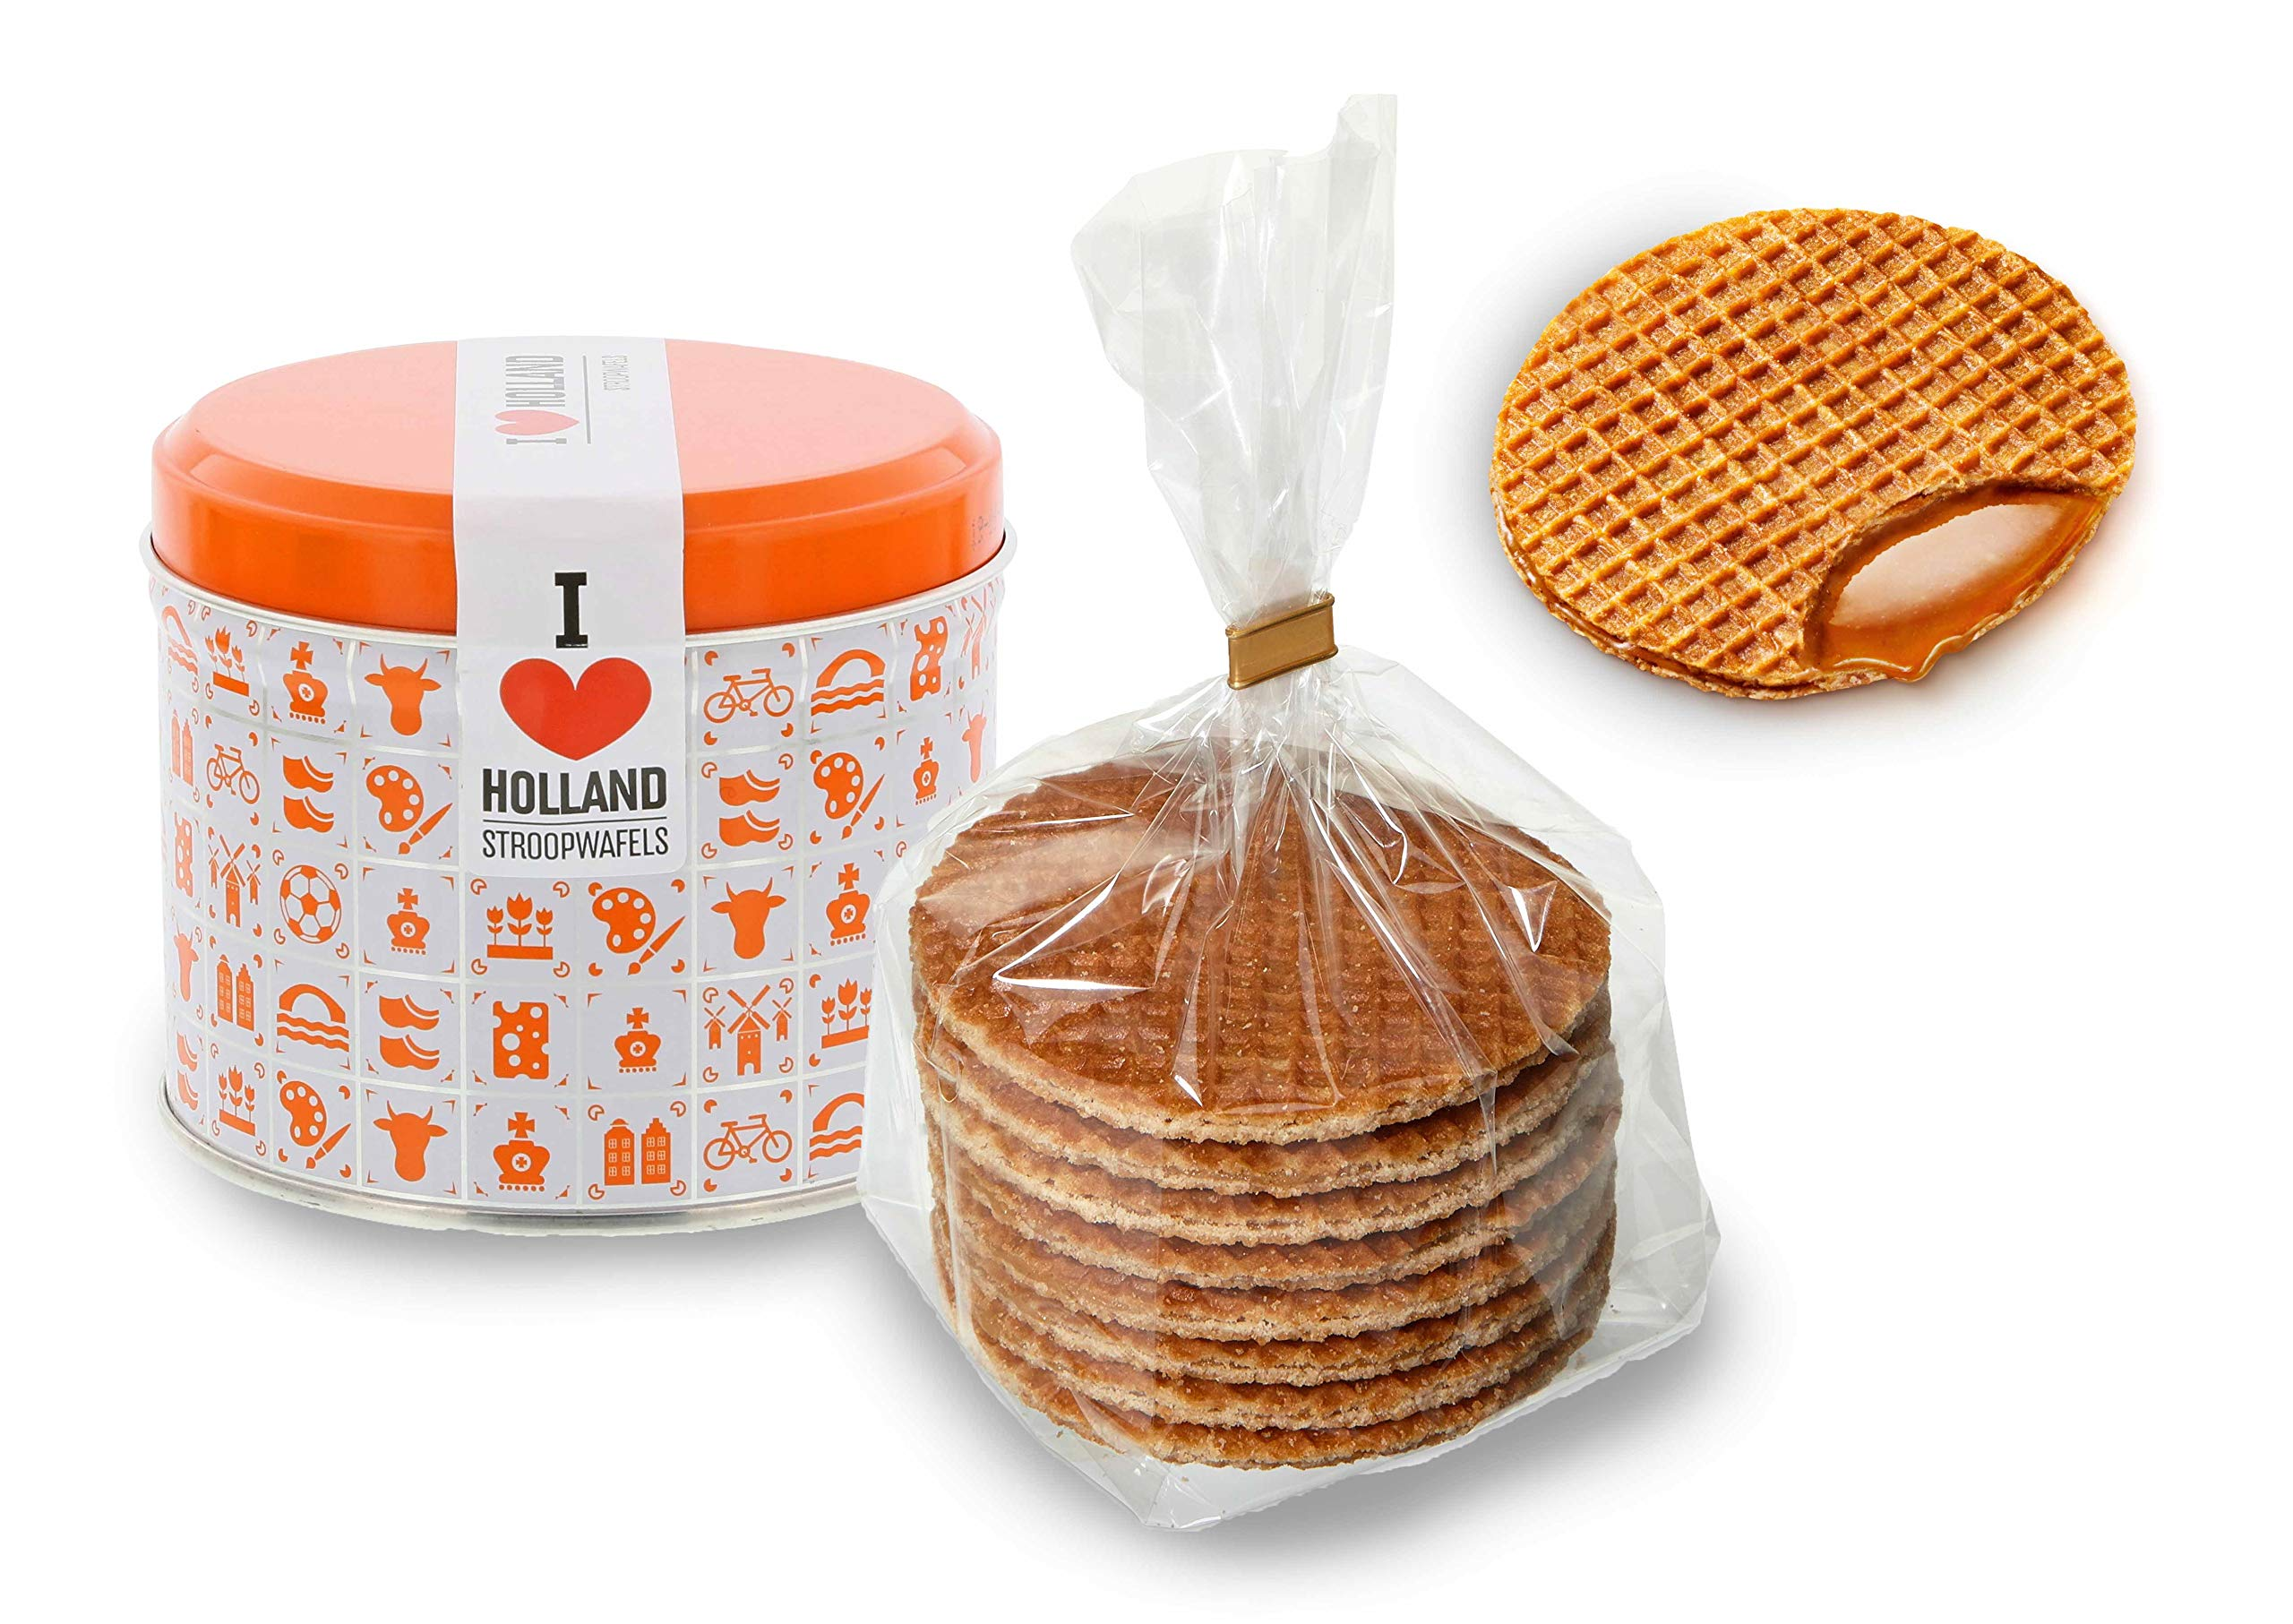 Daelmans Stroopwafel Tin | Caramel Stroopwaffles - 230 g per tin - Blue or Orange | Warm it up on Your Cup - Great Small Gift for Friends, Family & Colleagues (Orange, 1 Tin)